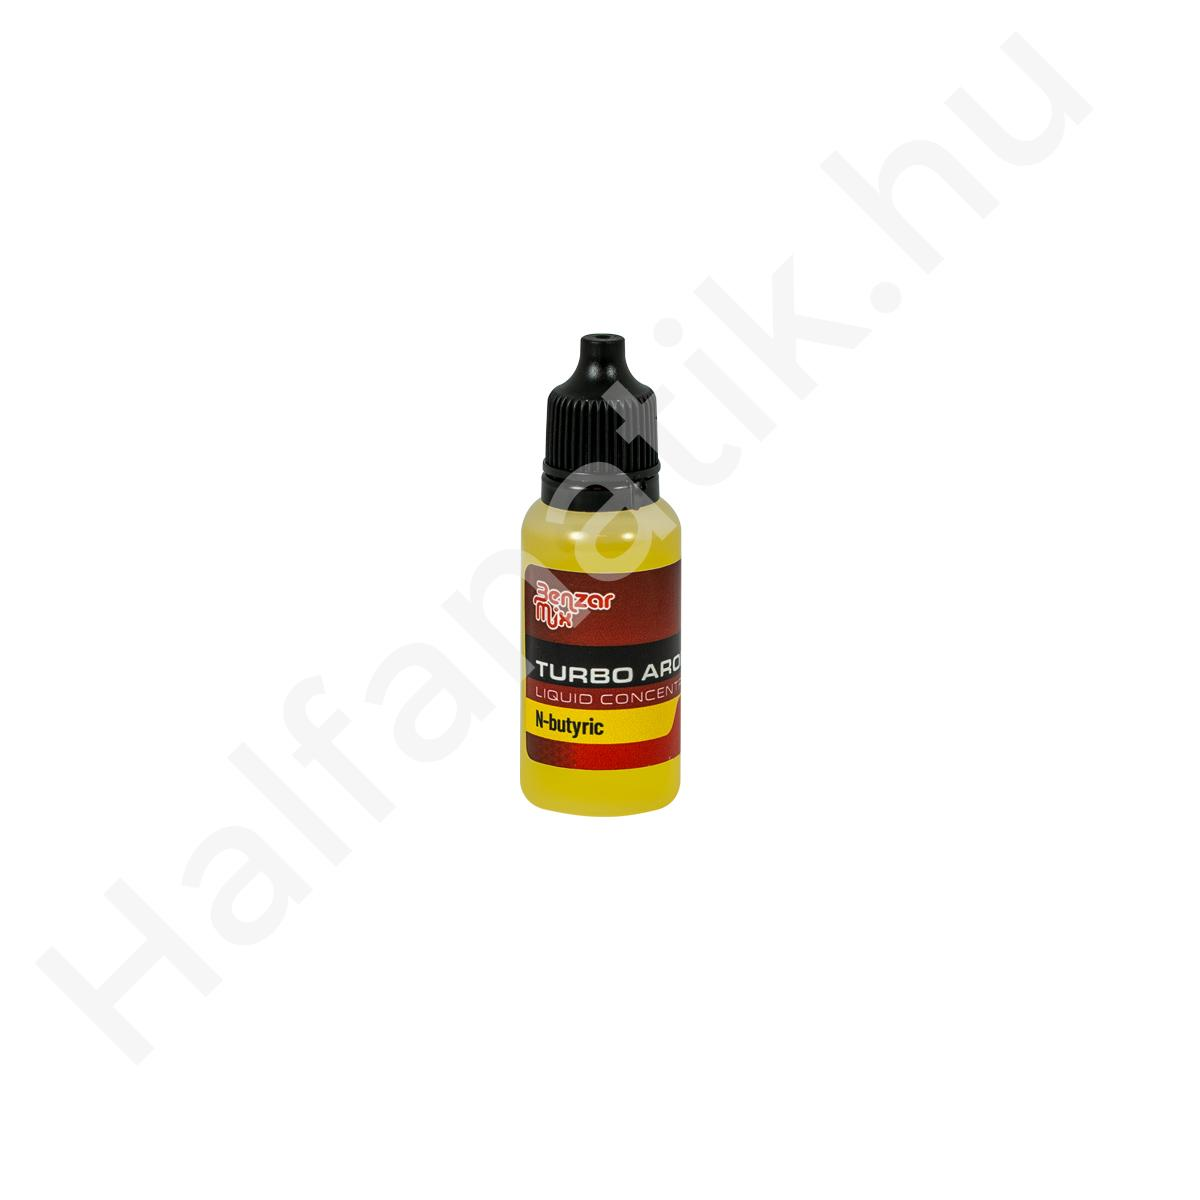 BENZAR MIX TURBO AROMA VAJSAV 15ML